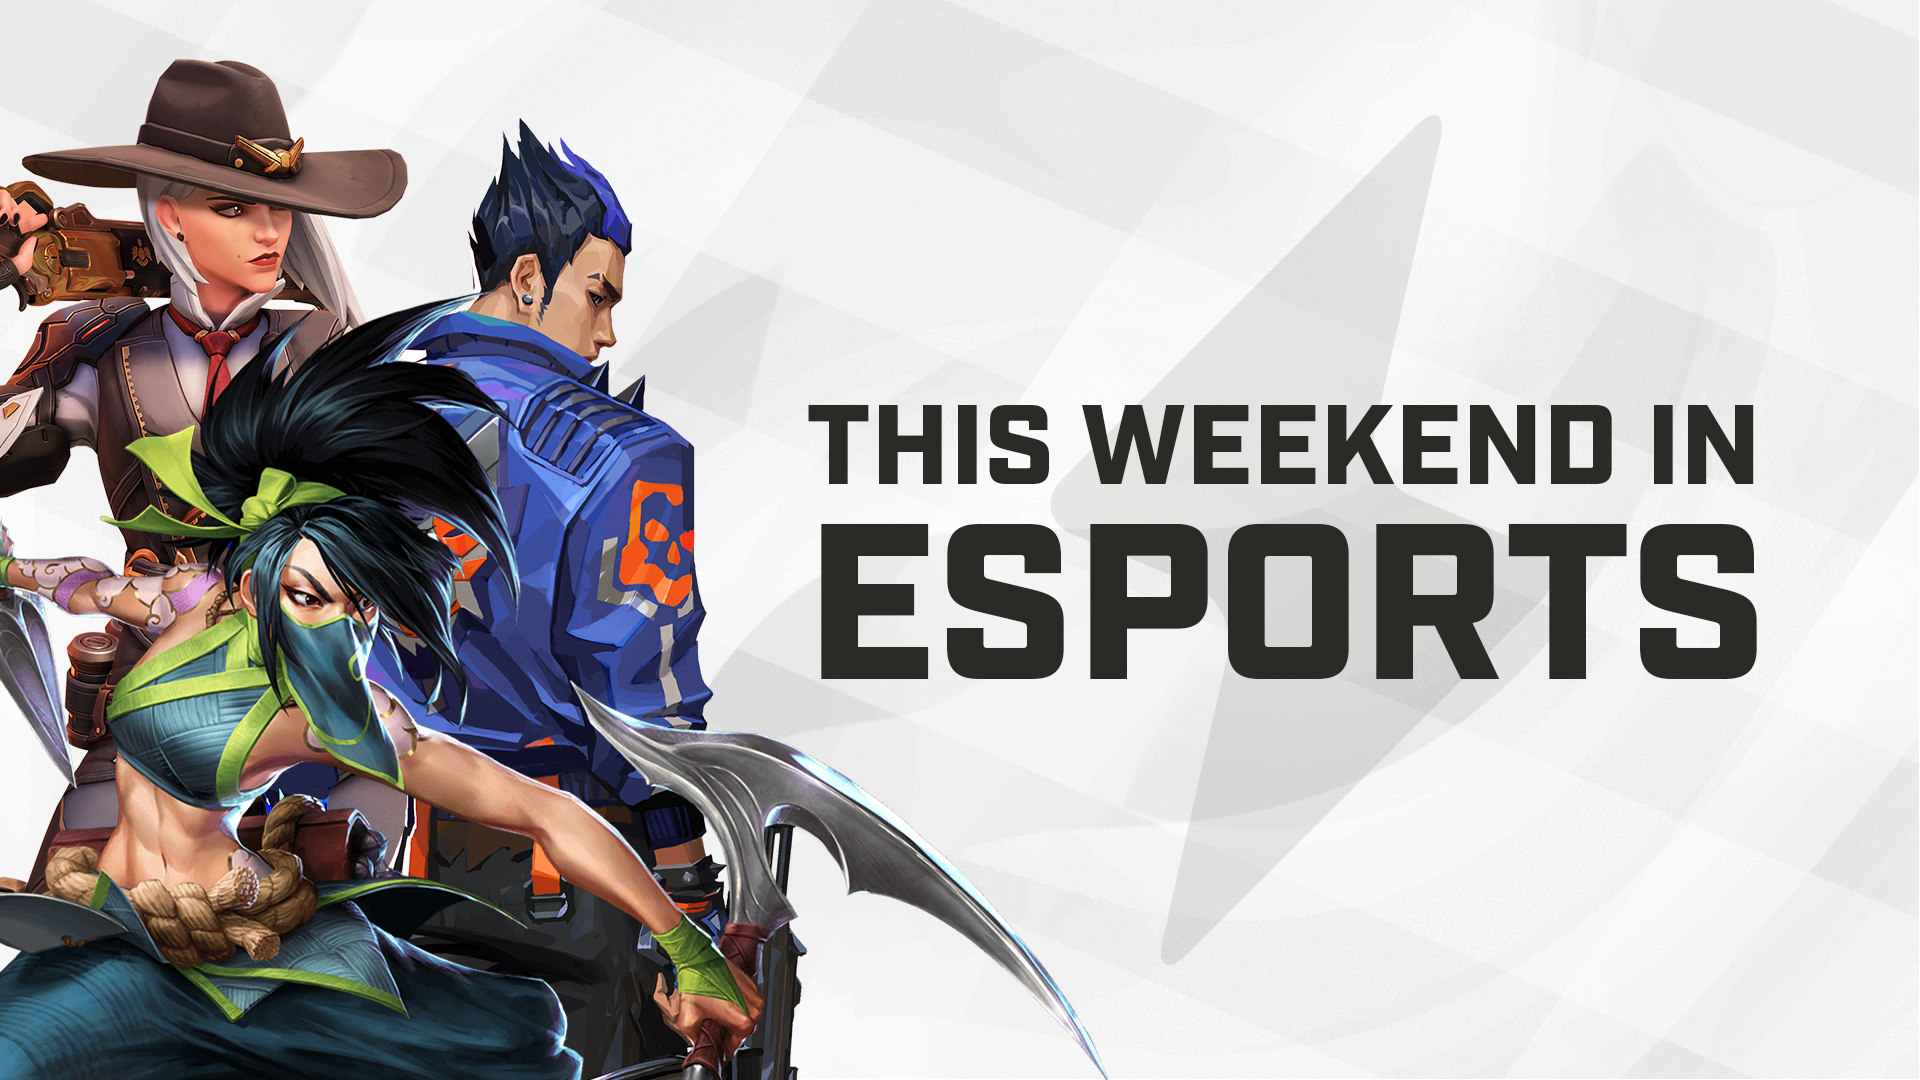 Here are the top events to watch this weekend in esports